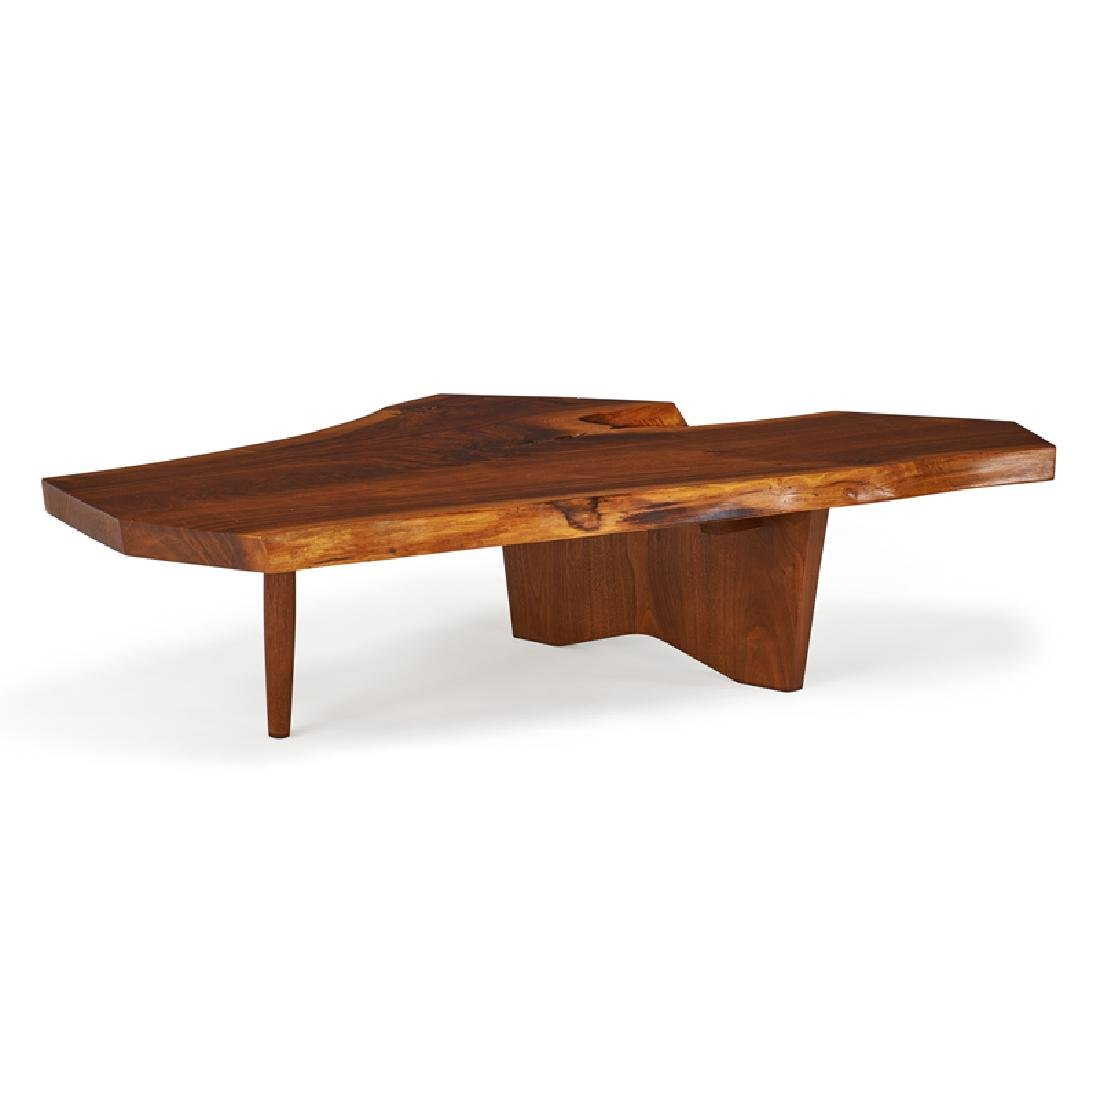 MIRA NAKASHIMA Conoid coffee table